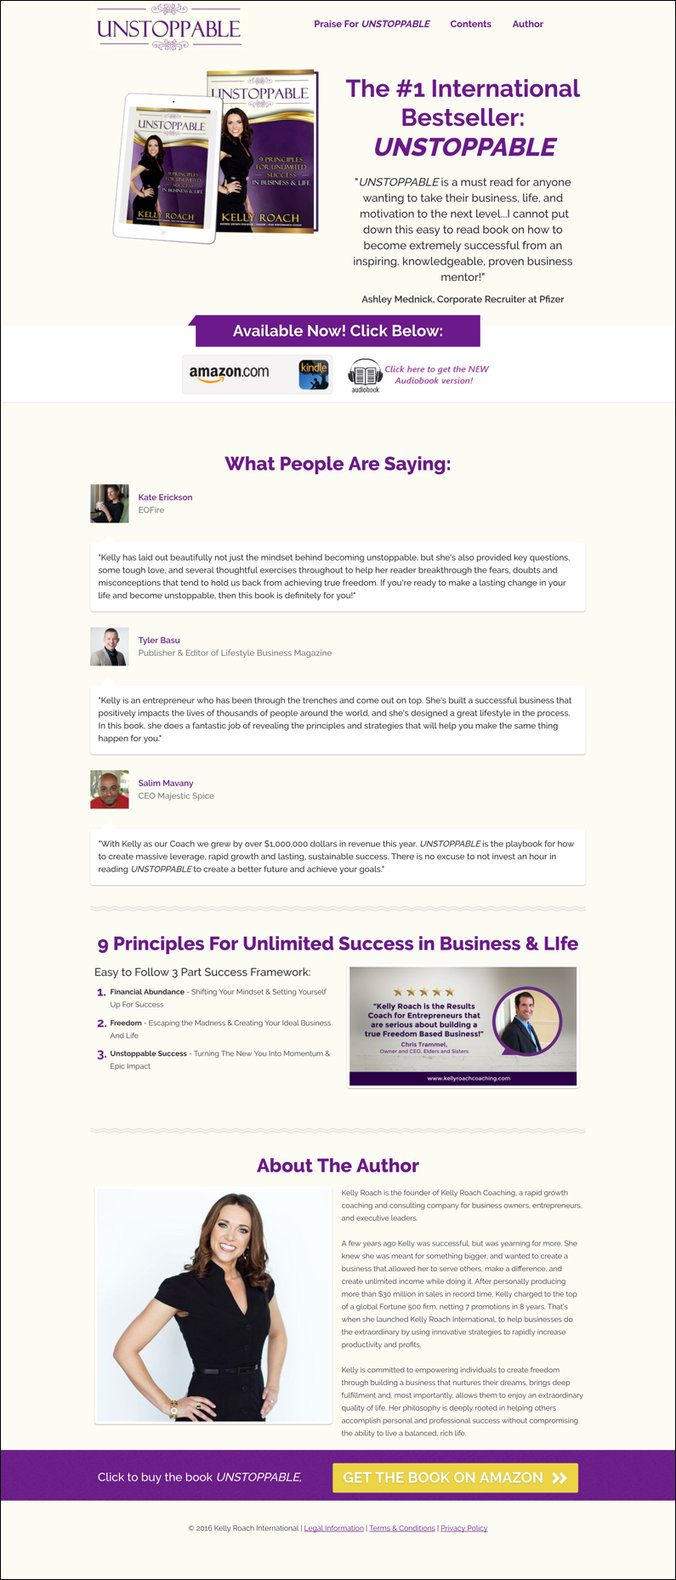 Landing Page Roundup: Our Top 10 Favorite Pages from April